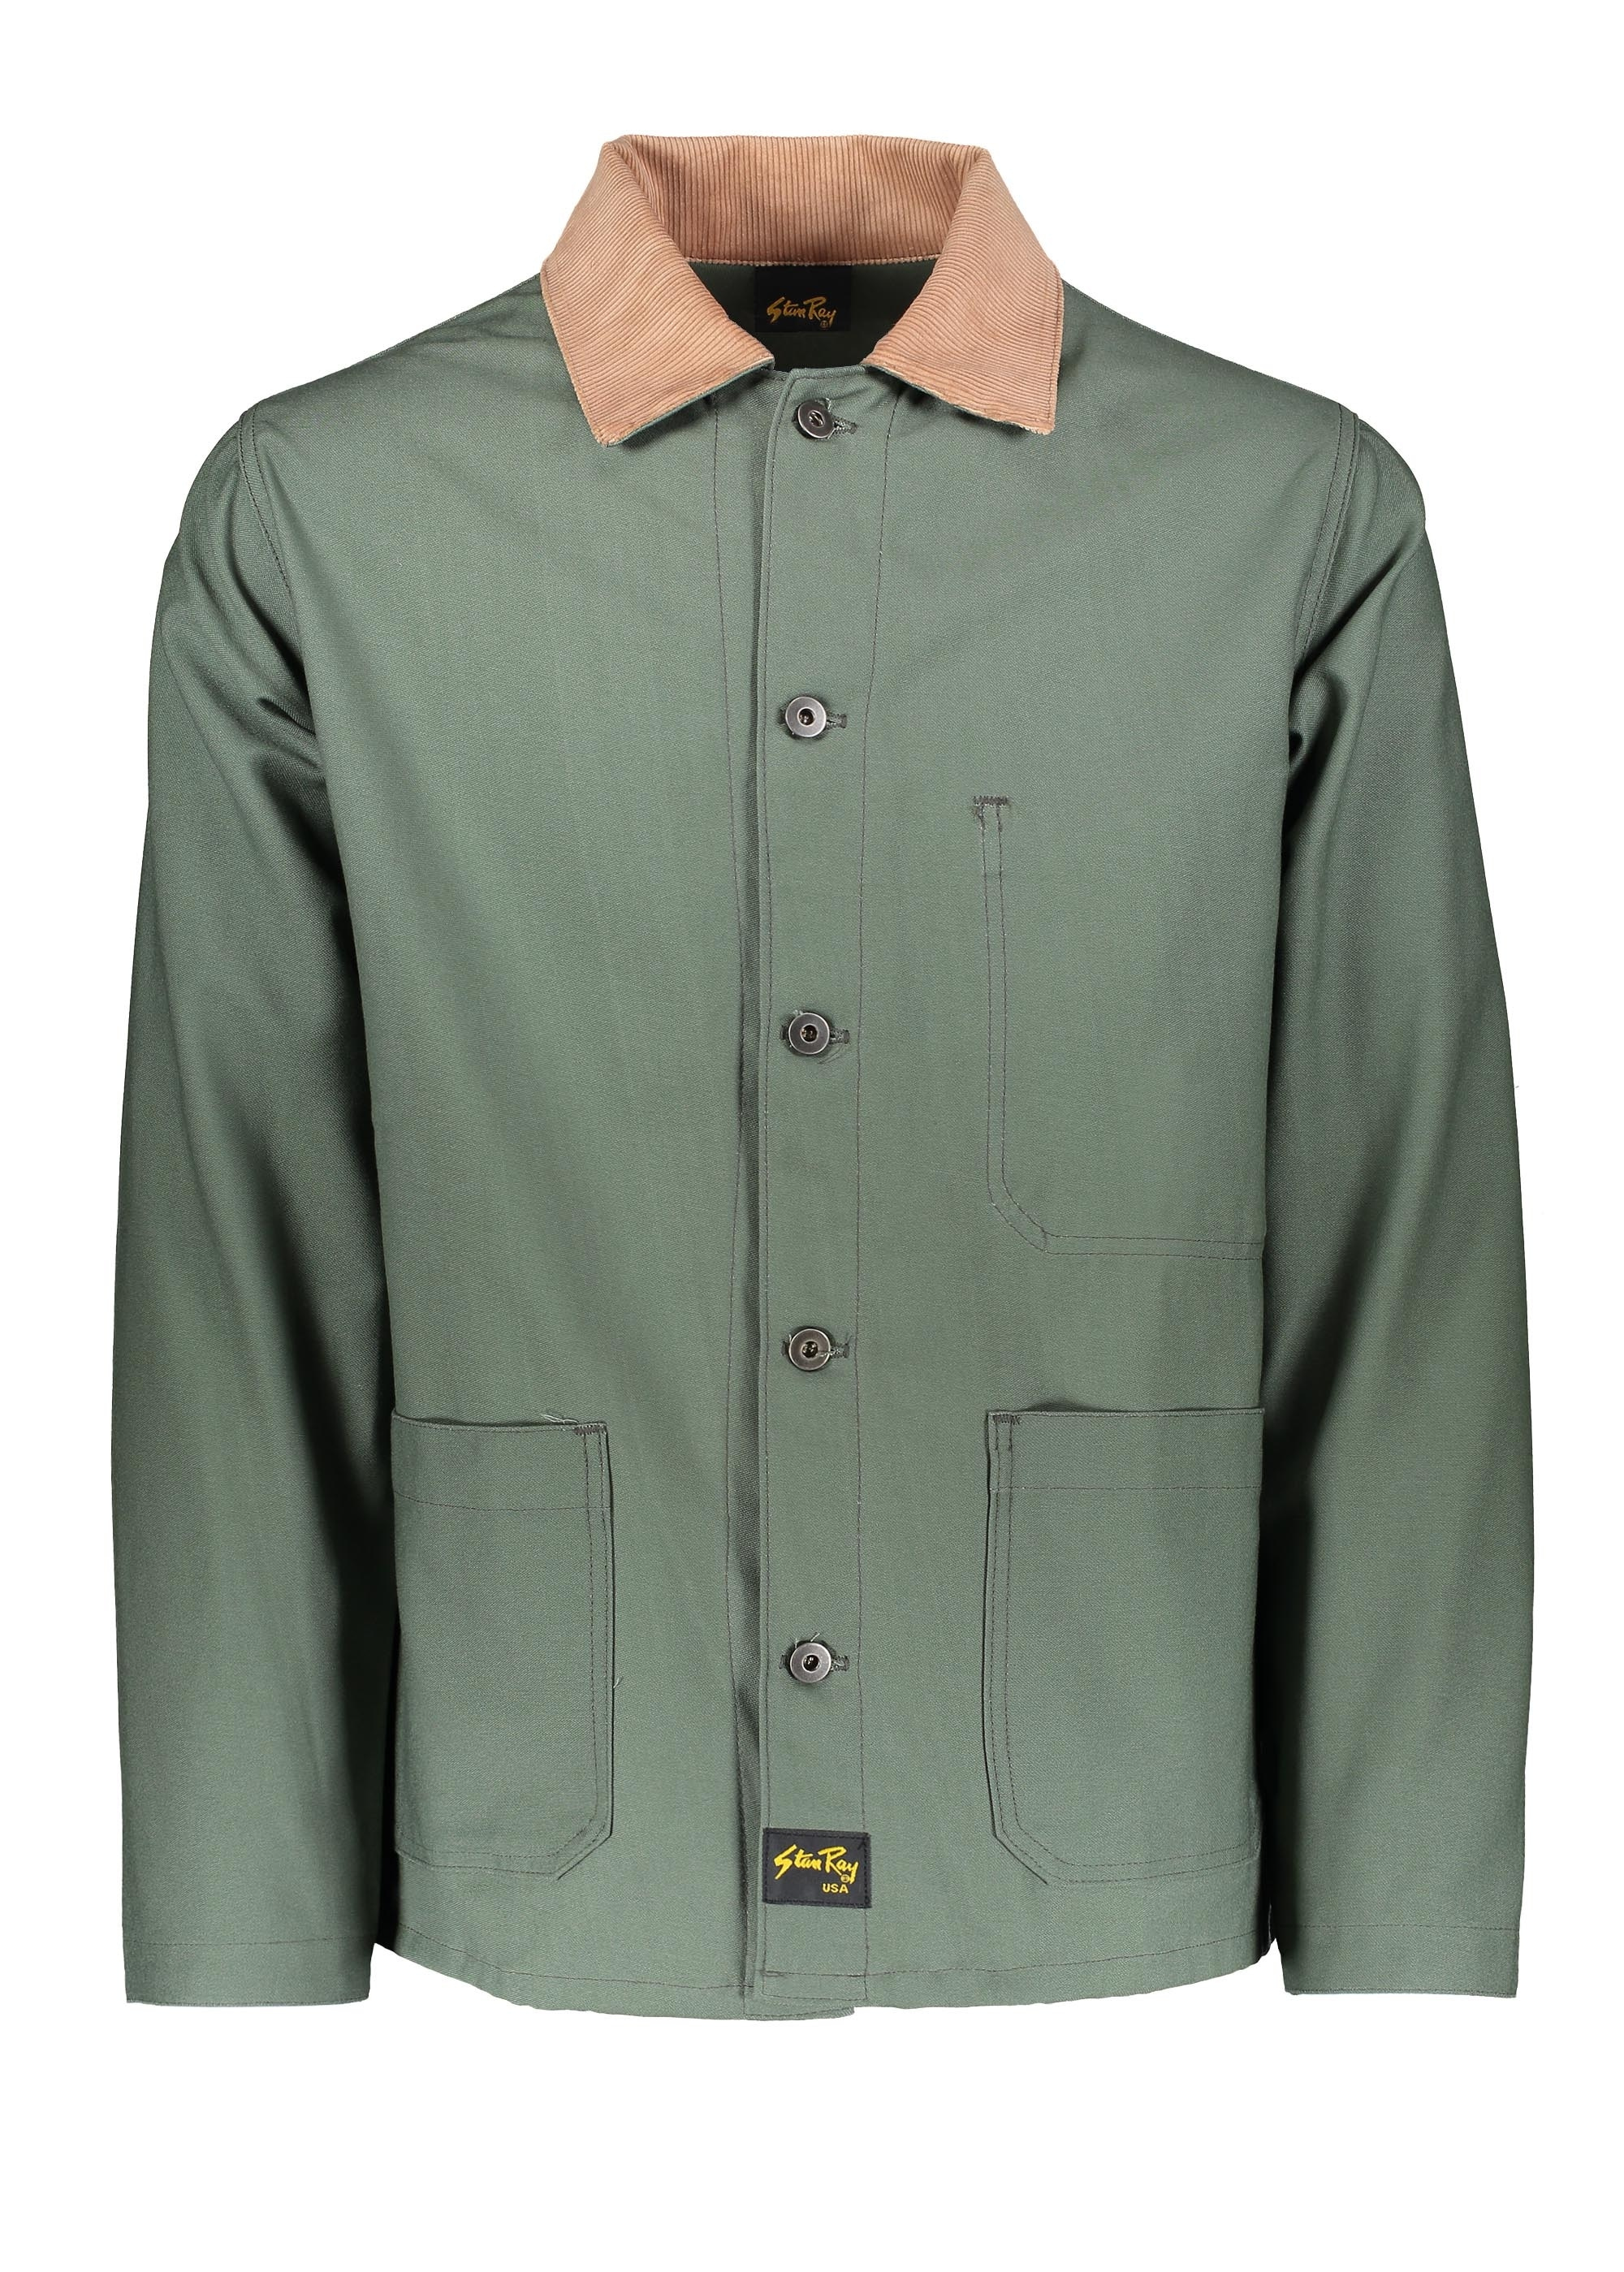 47f8172a5e55 Stan Ray Archive Jacket - Olive - Jackets from Triads UK